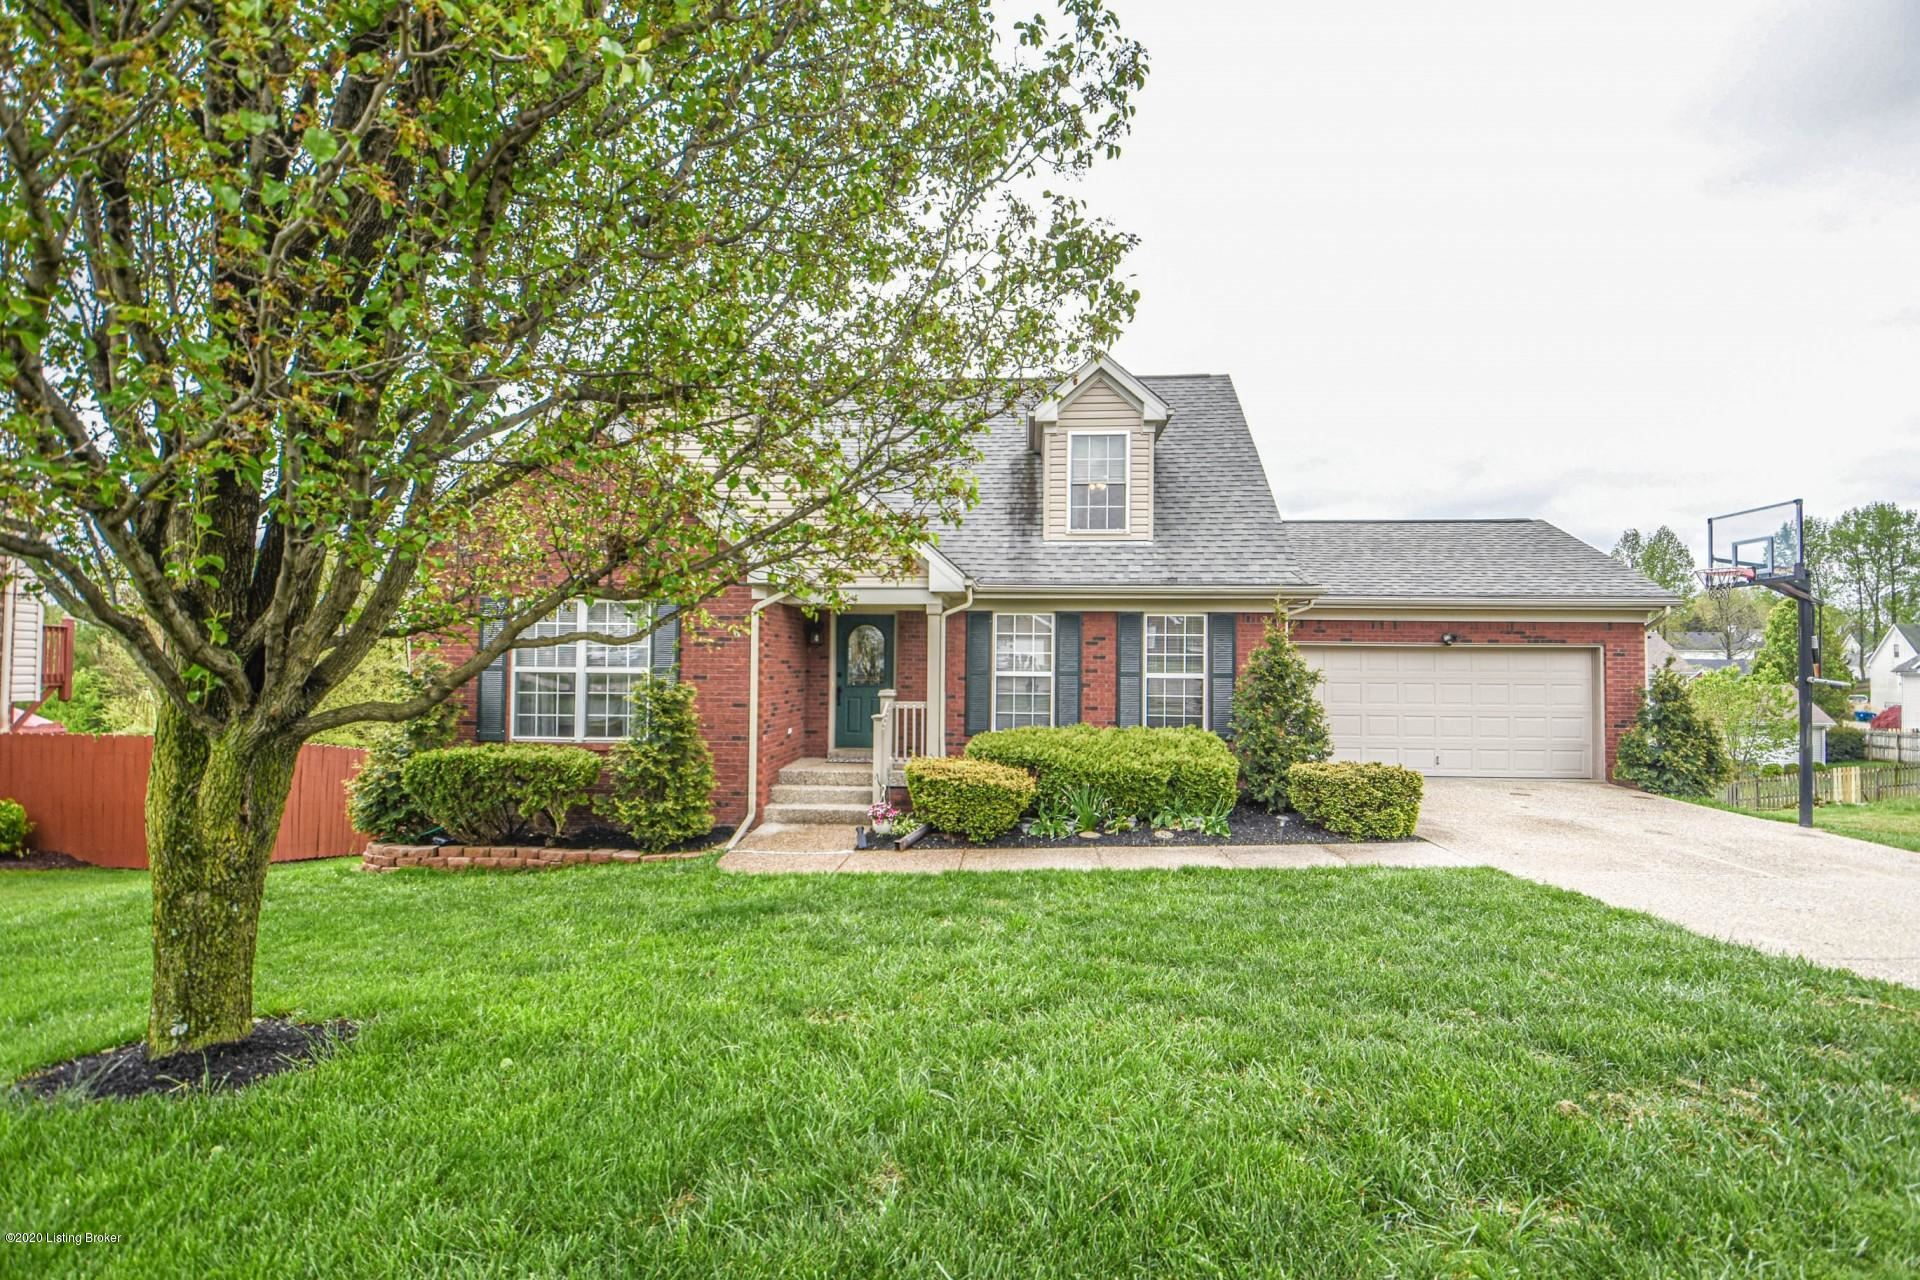 9506 Apple Crossing Ct, Crestwood, KY 40014 - #: 1558652